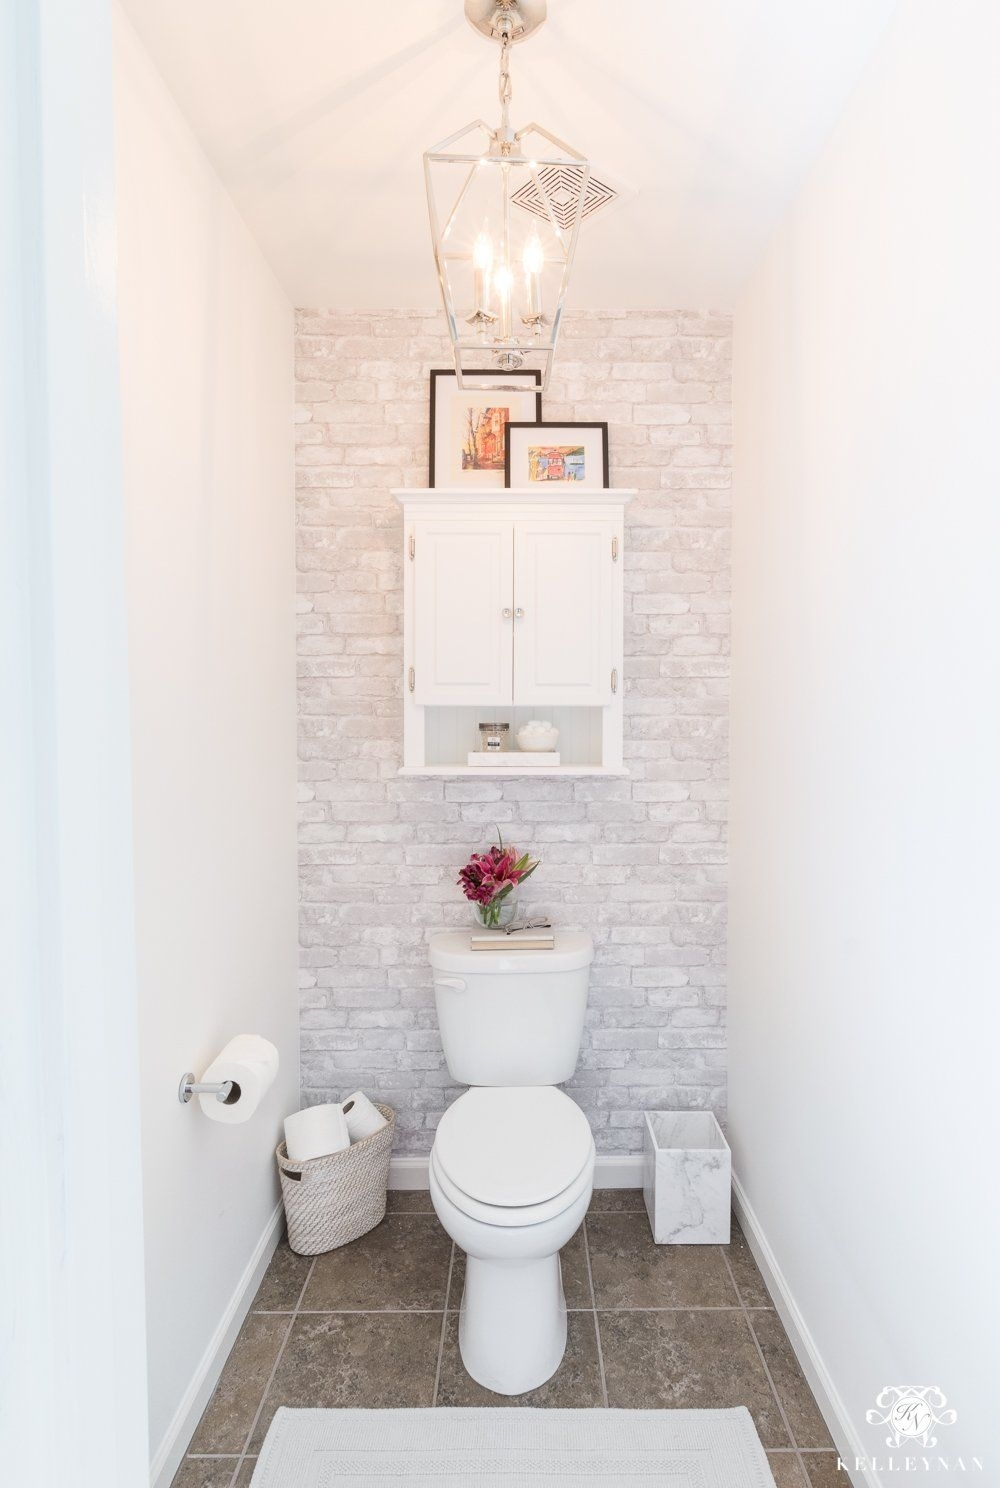 toilet room makeover decorating ideas | influencer inspiration within Decorating The Bathroom